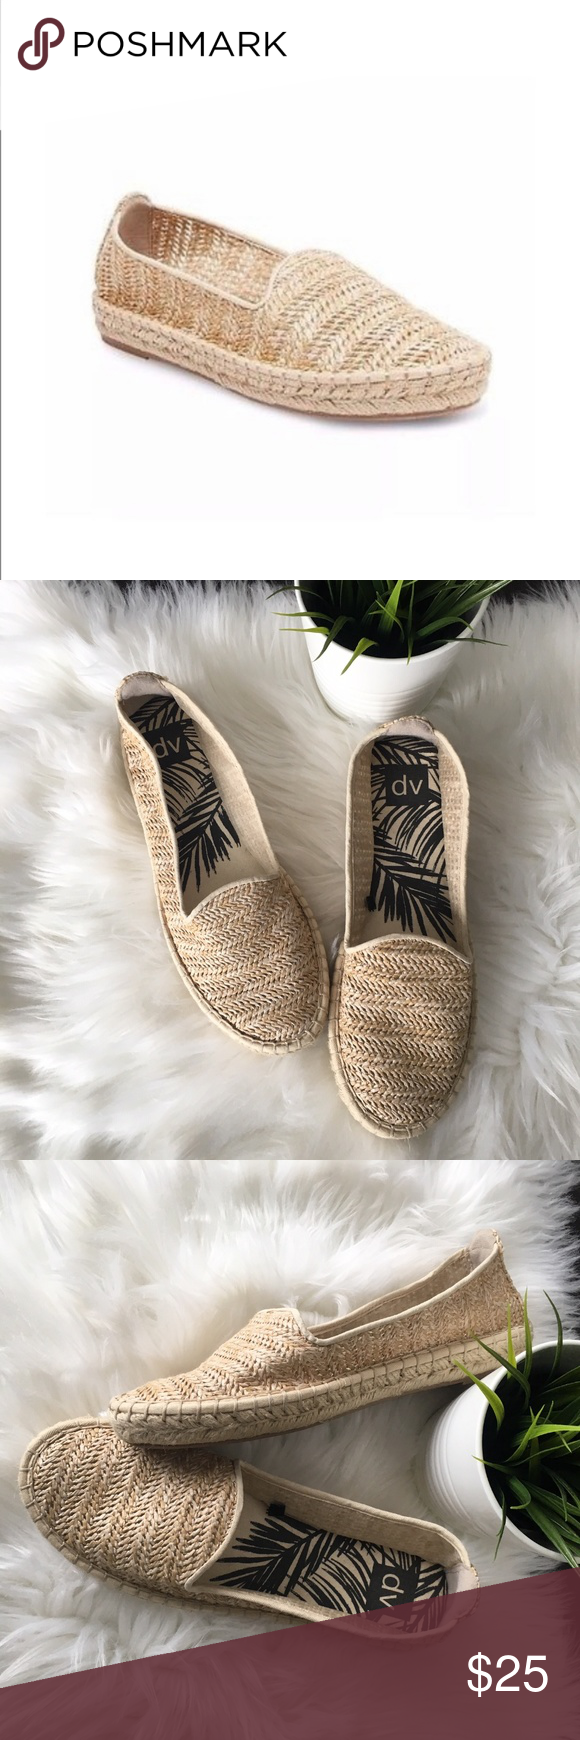 d3998673807b DV by Dolce Vita Espadrilles Flats Women s 10 NEW Brand new without tags  and from a smoke-free environment DV by Dolce Vita espadrille slip-ons  Natural ...